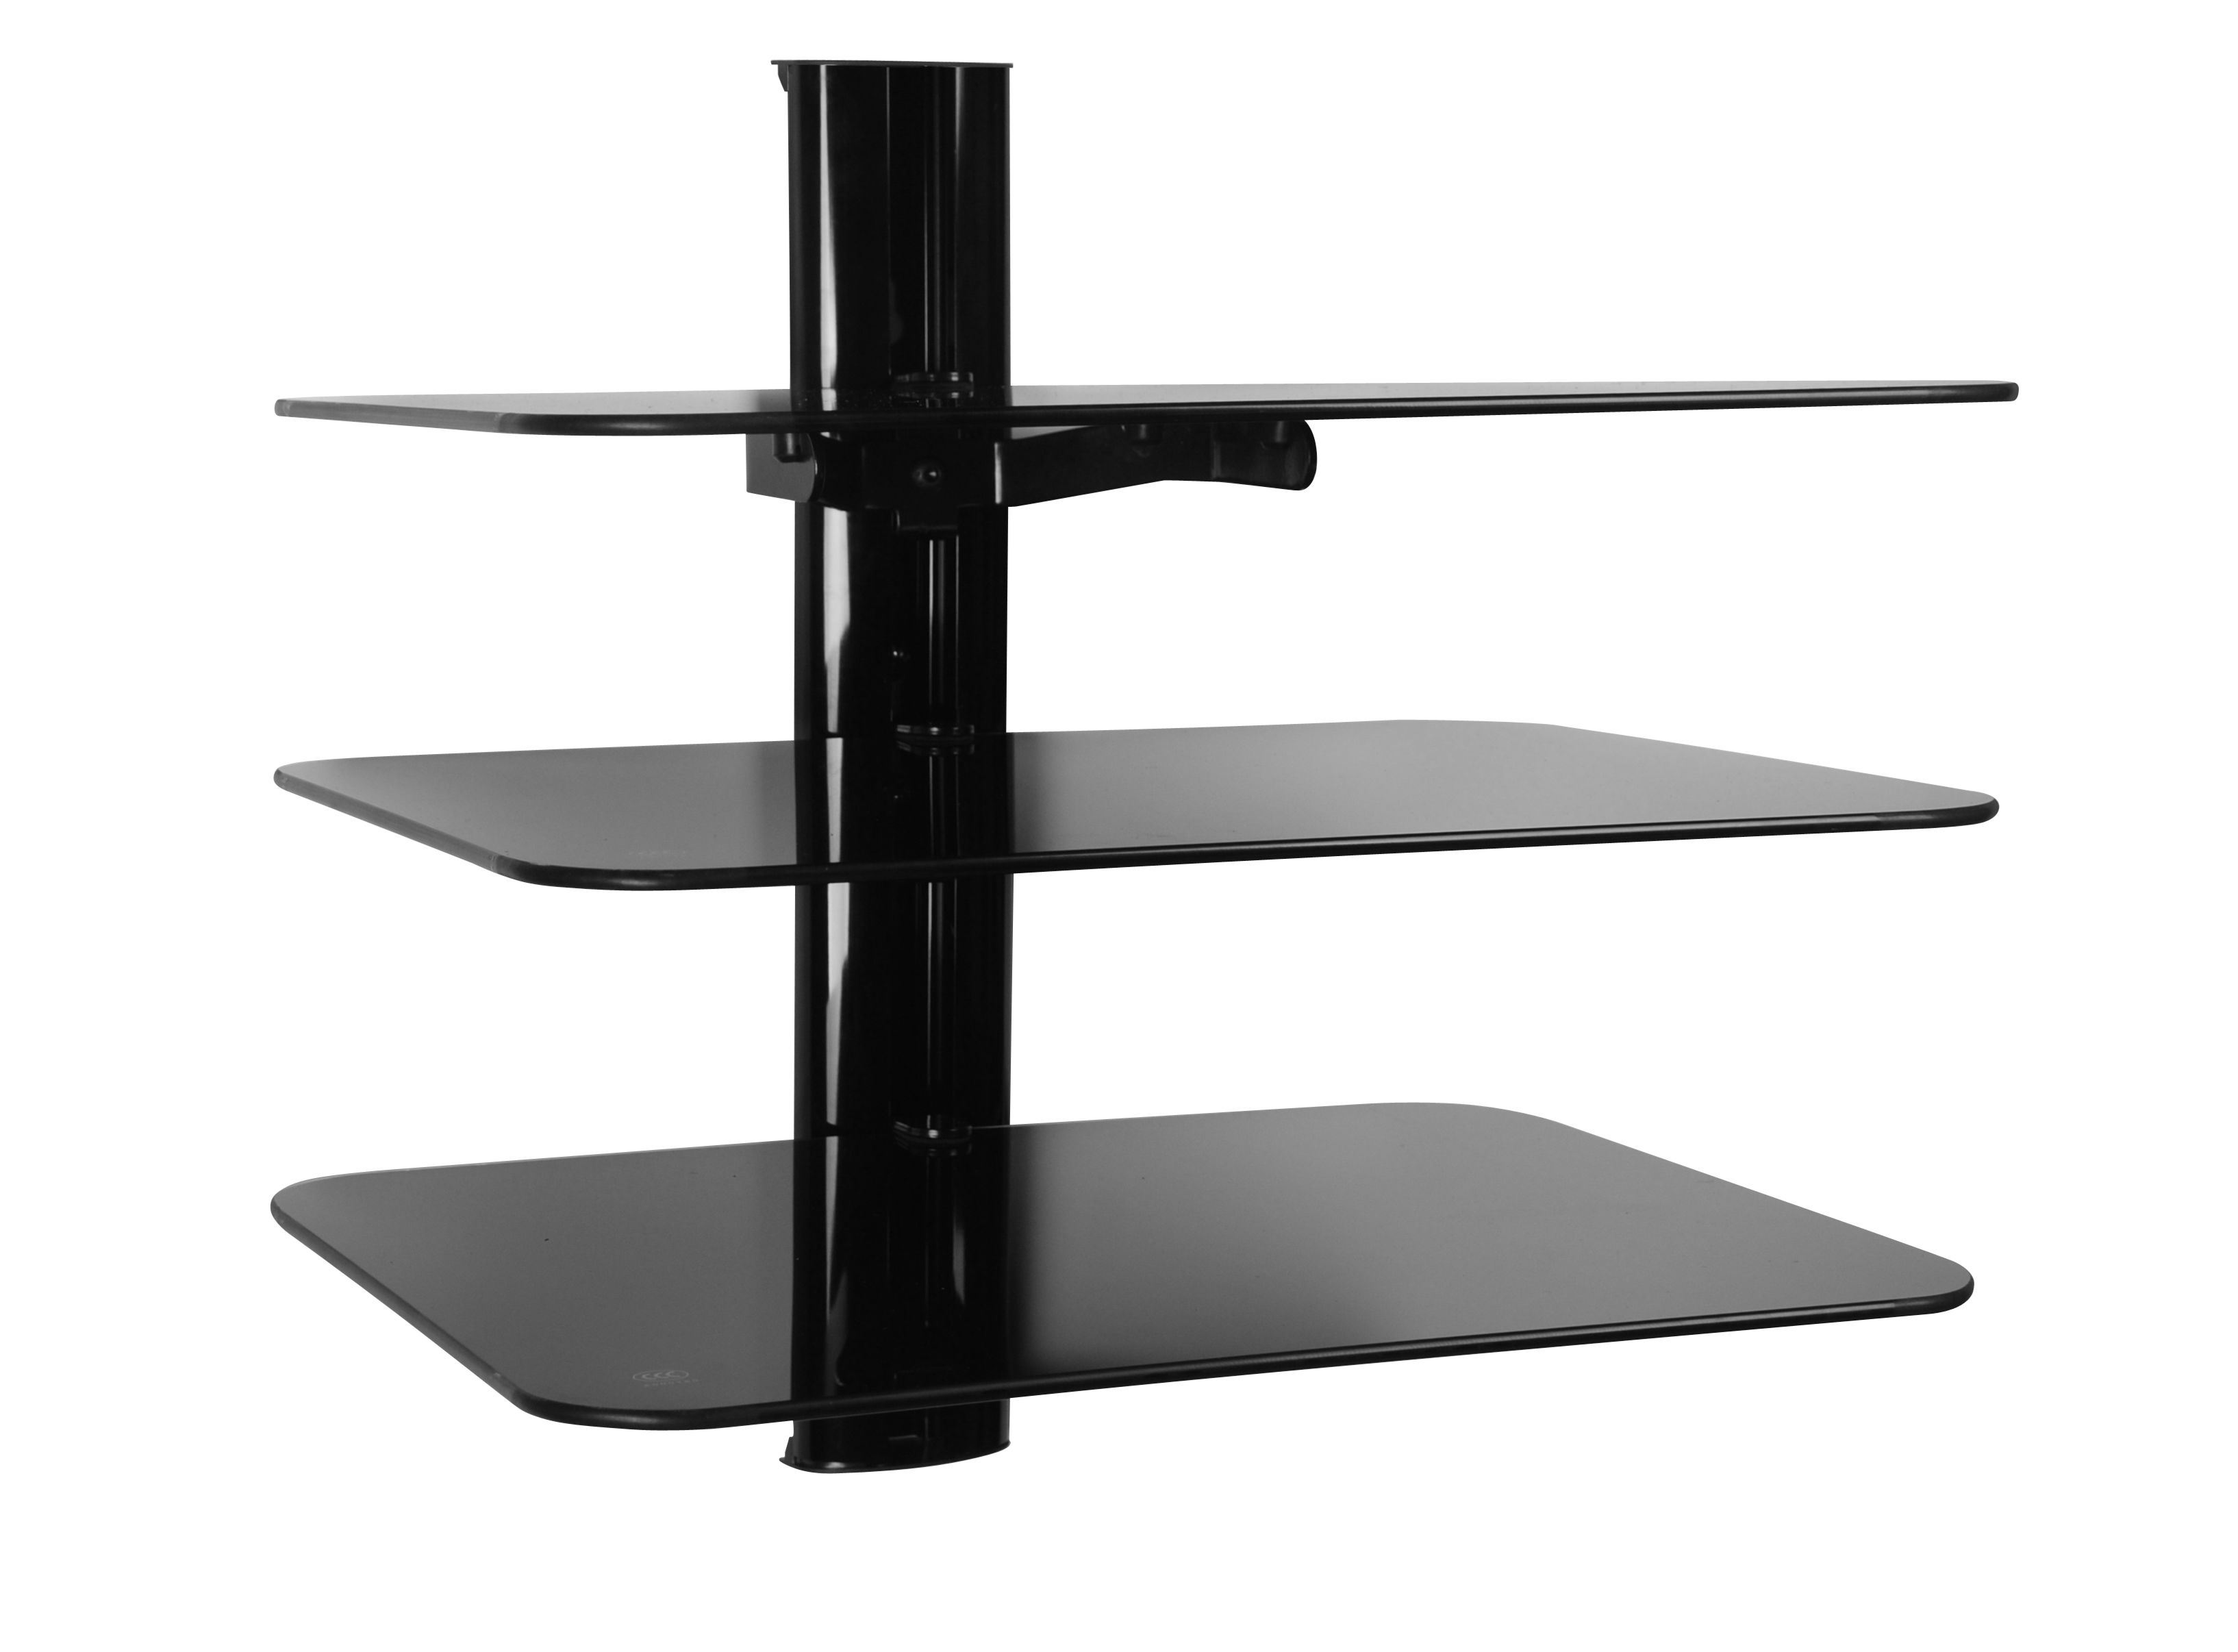 Triple Glass Av Shelving System Regarding Wall Mounted Black Glass Shelves (View 8 of 15)